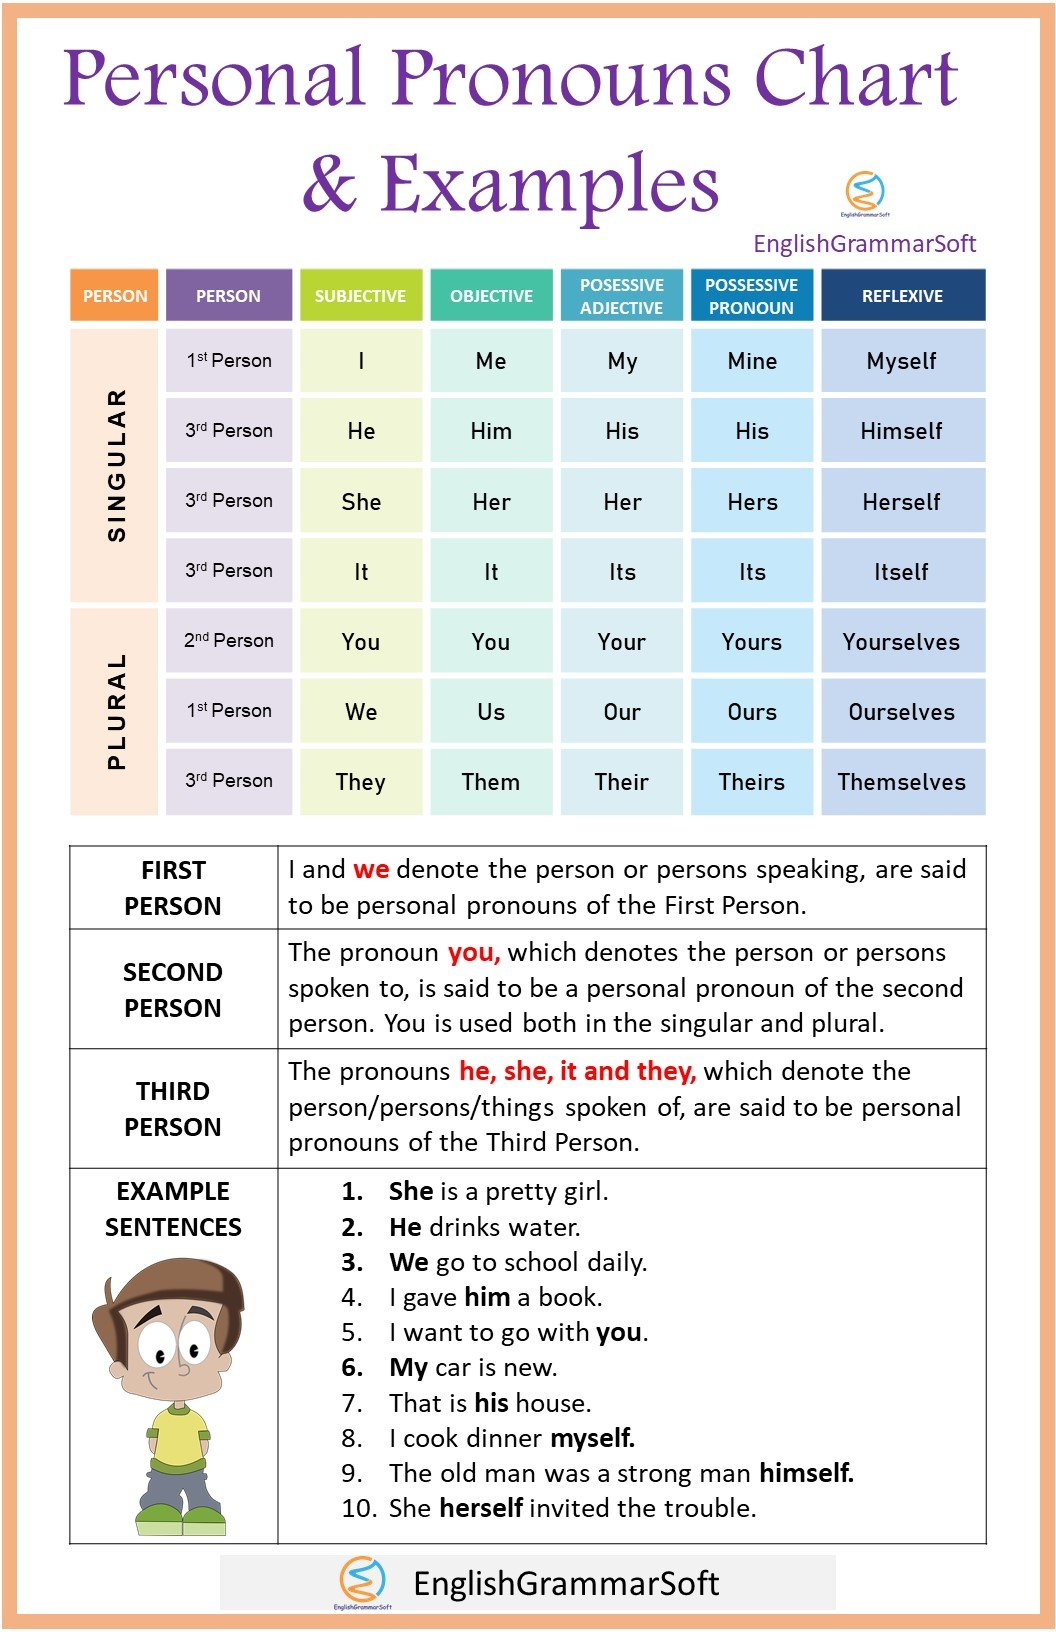 Personal Pronouns Chart and Examples